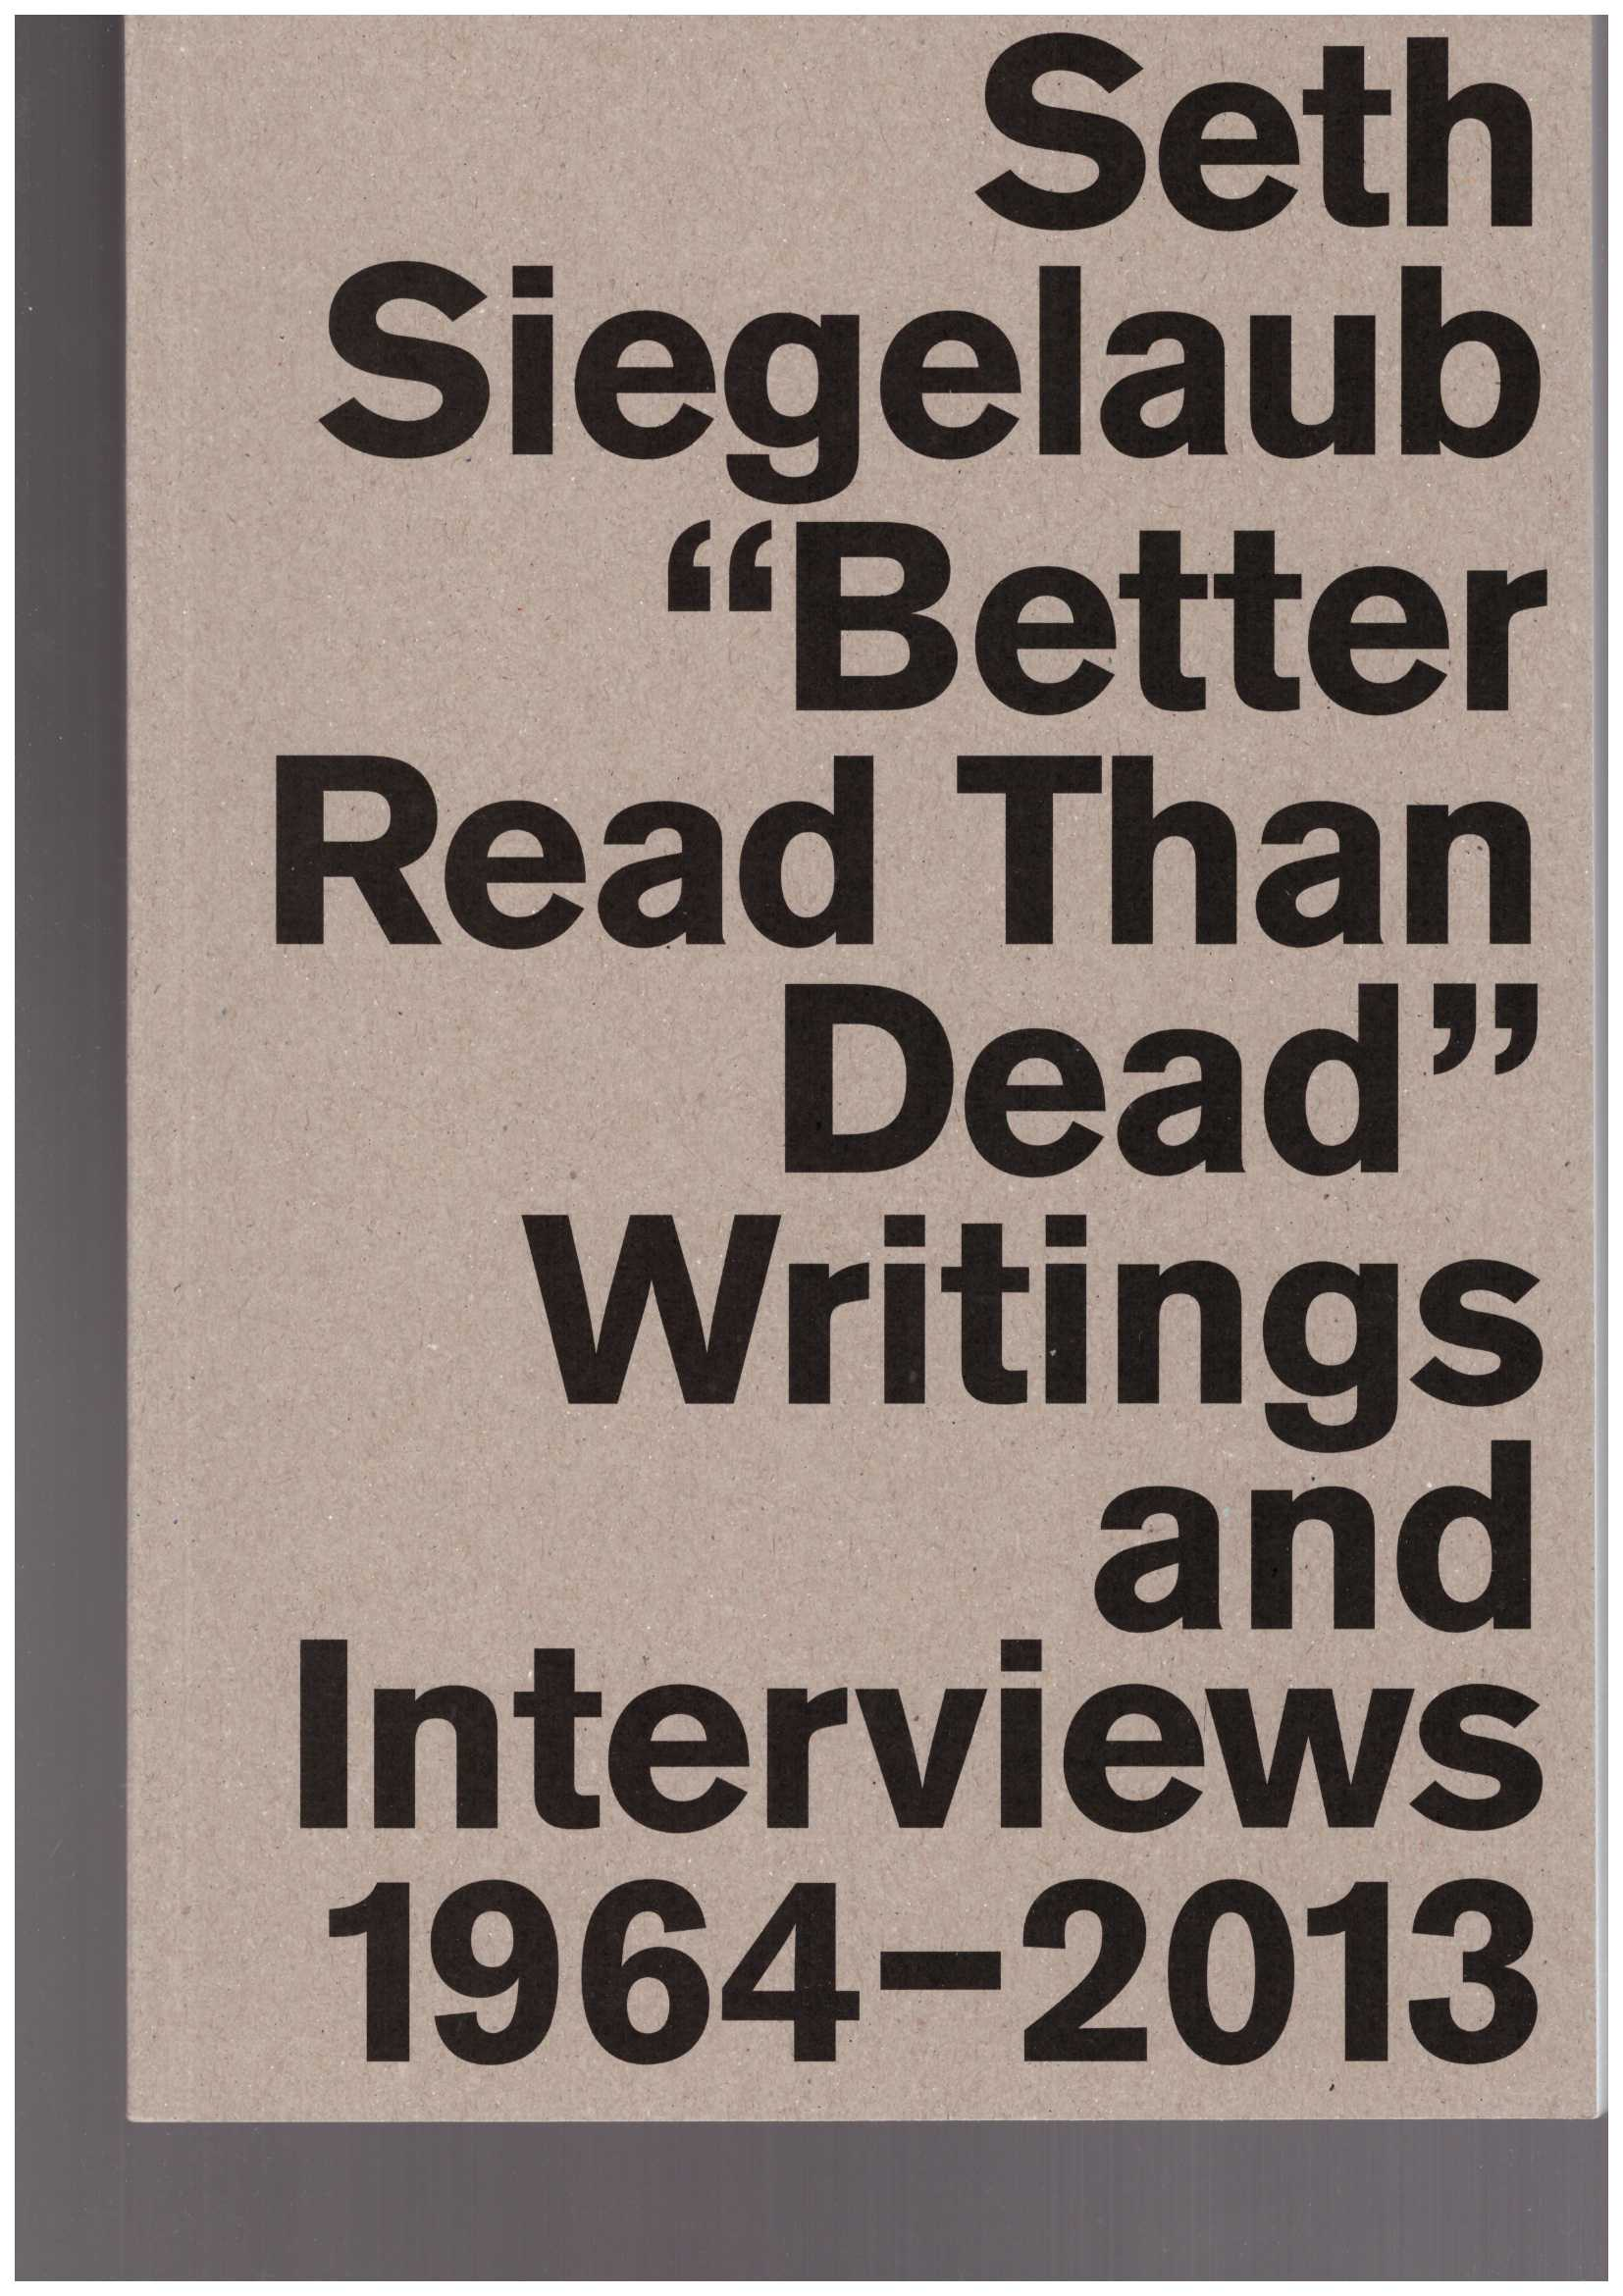 Marja Bloem, Krist Gruijthuijsen, Lauren van Haaften-Schick, Sara Martinetti, Jo Melvin (eds) - Seth Siegelaub: Better Read Than Dead. Writings and Interviews 1964–2013